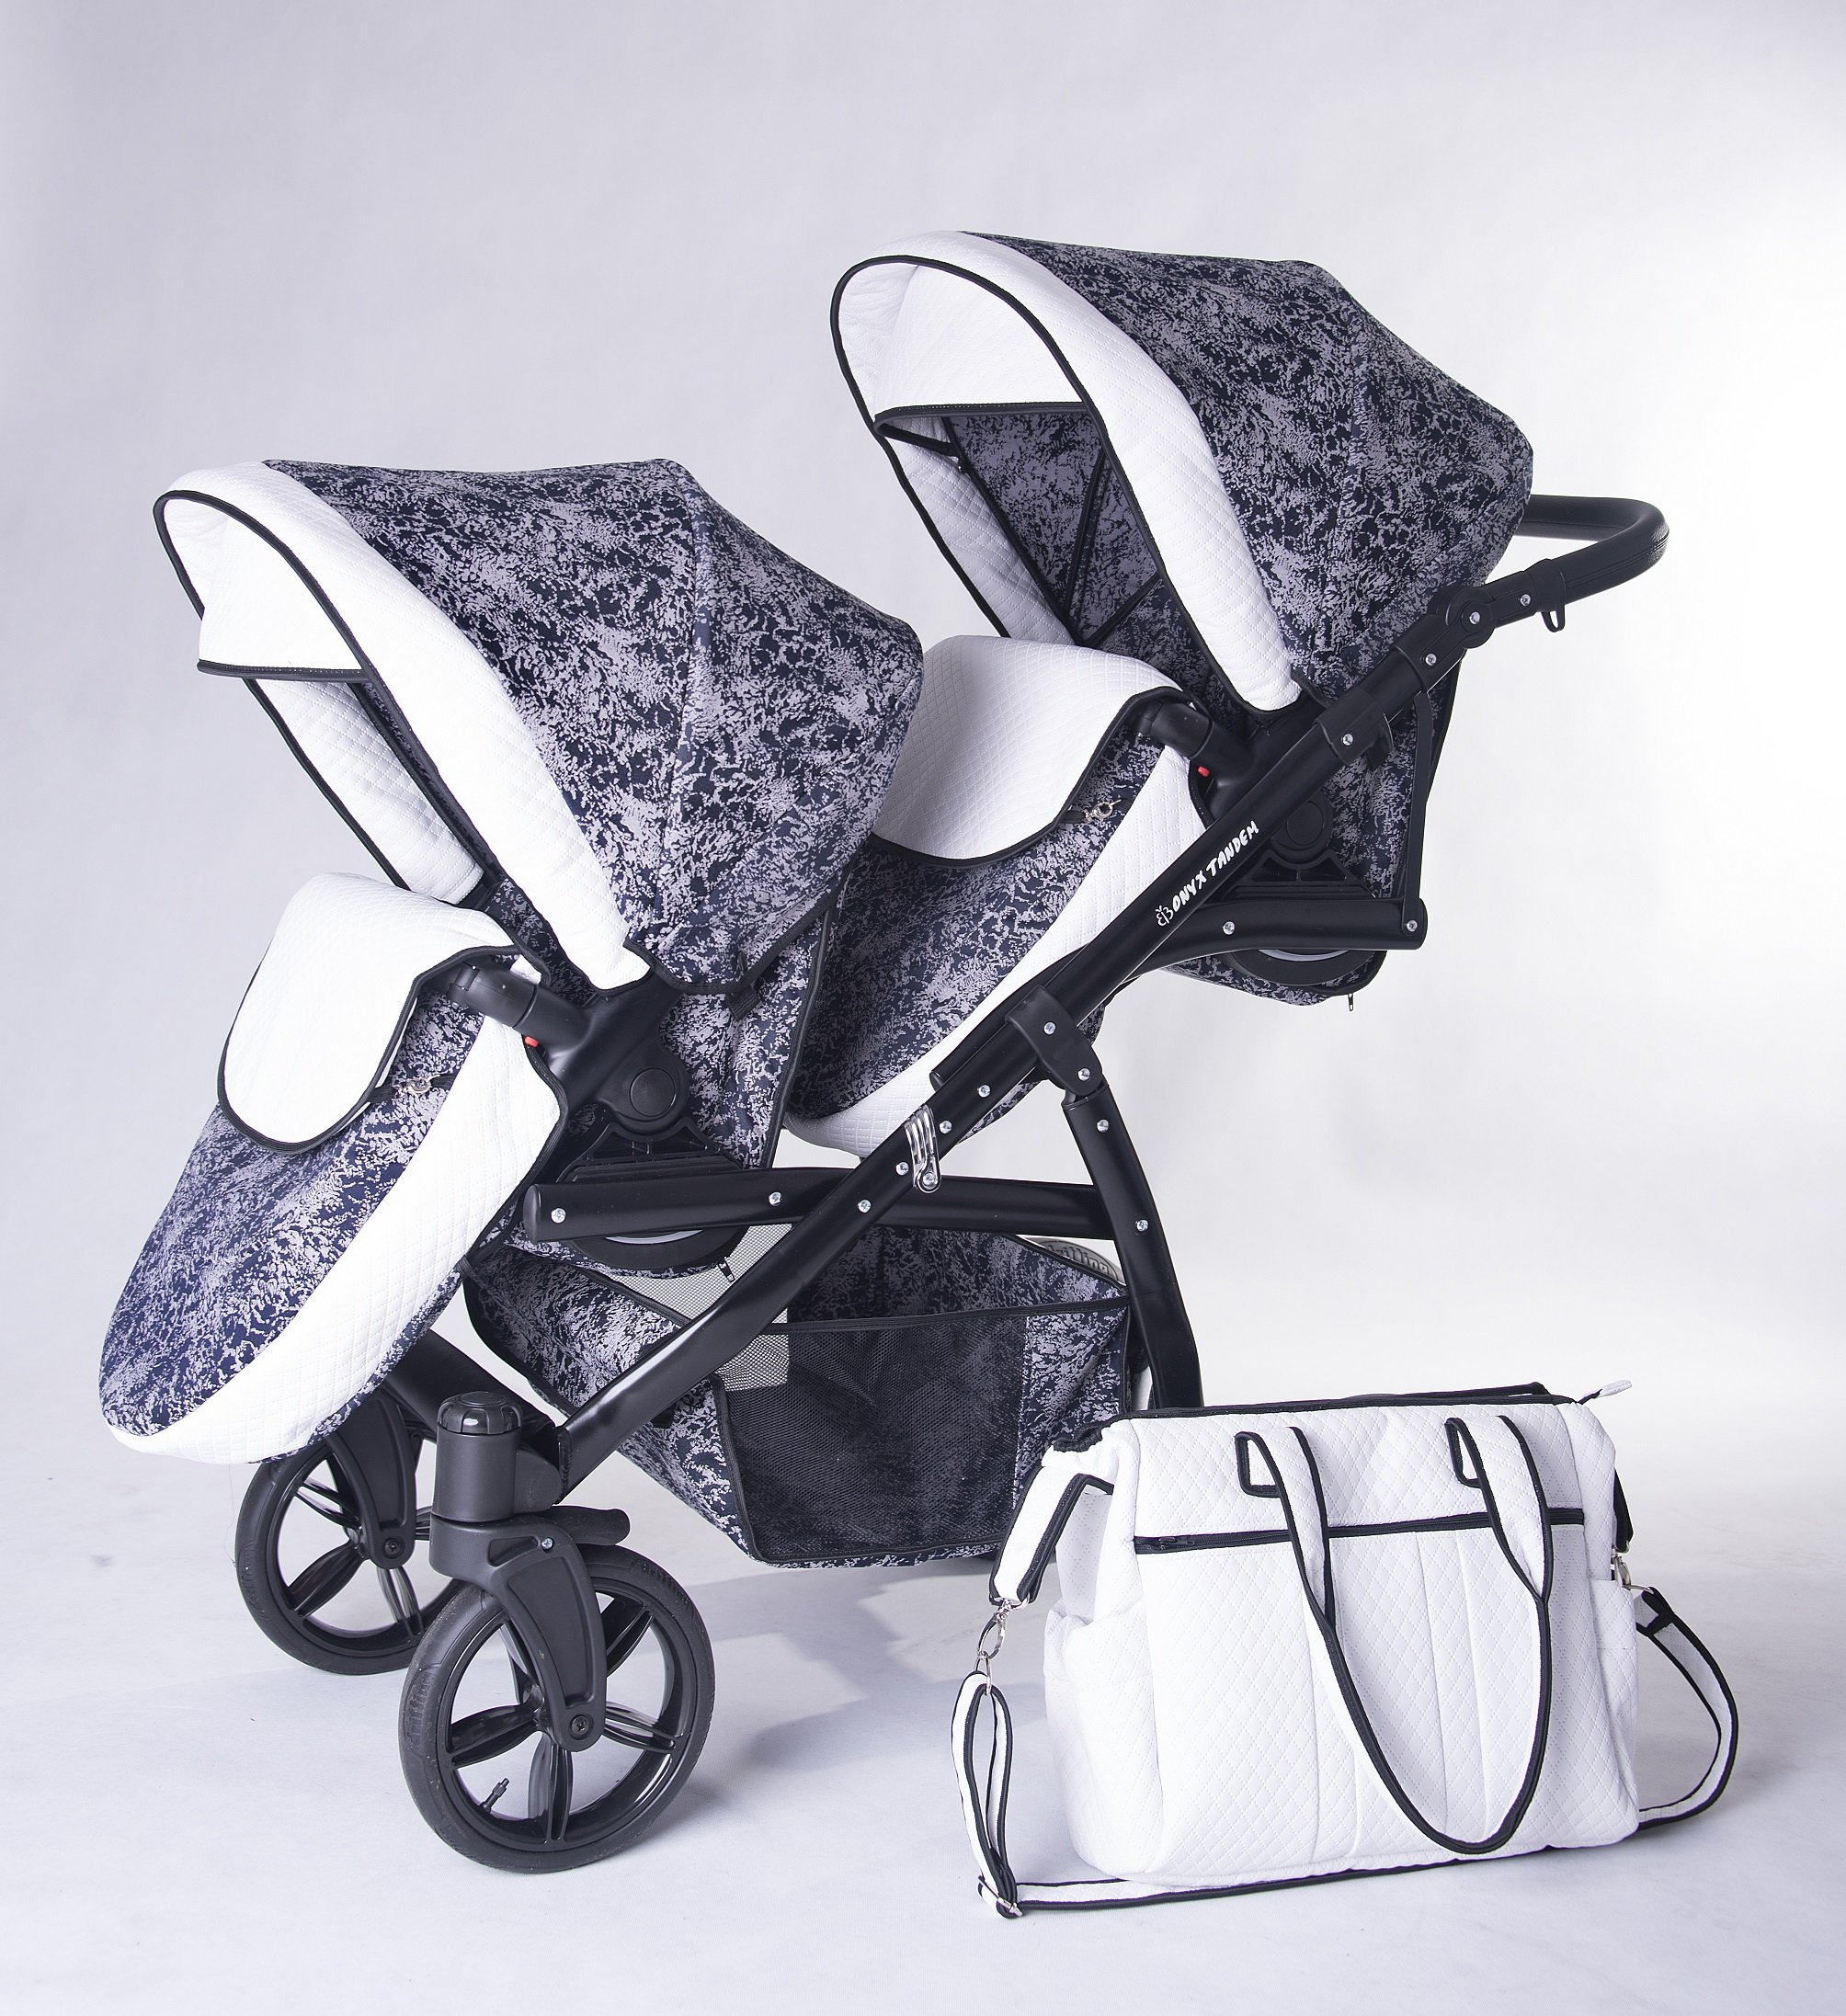 Double pram for twins. 2 carrycots + 2 buggies + 2 car seats. Blue + white ecoleather. BBtwin Berber Carlo Directly from the factory, warranty and advice. Made un the EU according to the regulations EN1888 and ECE44/04. Colour blue and silver with whote ecoleather, chassis black. Includes 2 carrycots, 2 buggy seats, 2 car seats, bag, 2 footcovers, 2 rain covers, 2 mosquito nets, lower basket, Features: lightweight aluminium frame, easy bending, adjustable handlebar, central brake, lockable front swivel wheels, shock absorbers, each buggy can be instaled independently in both directions, carrycots with a mattress and a washable cover, backrest adjustable in various positions, safety bar and harness of 5 points 2